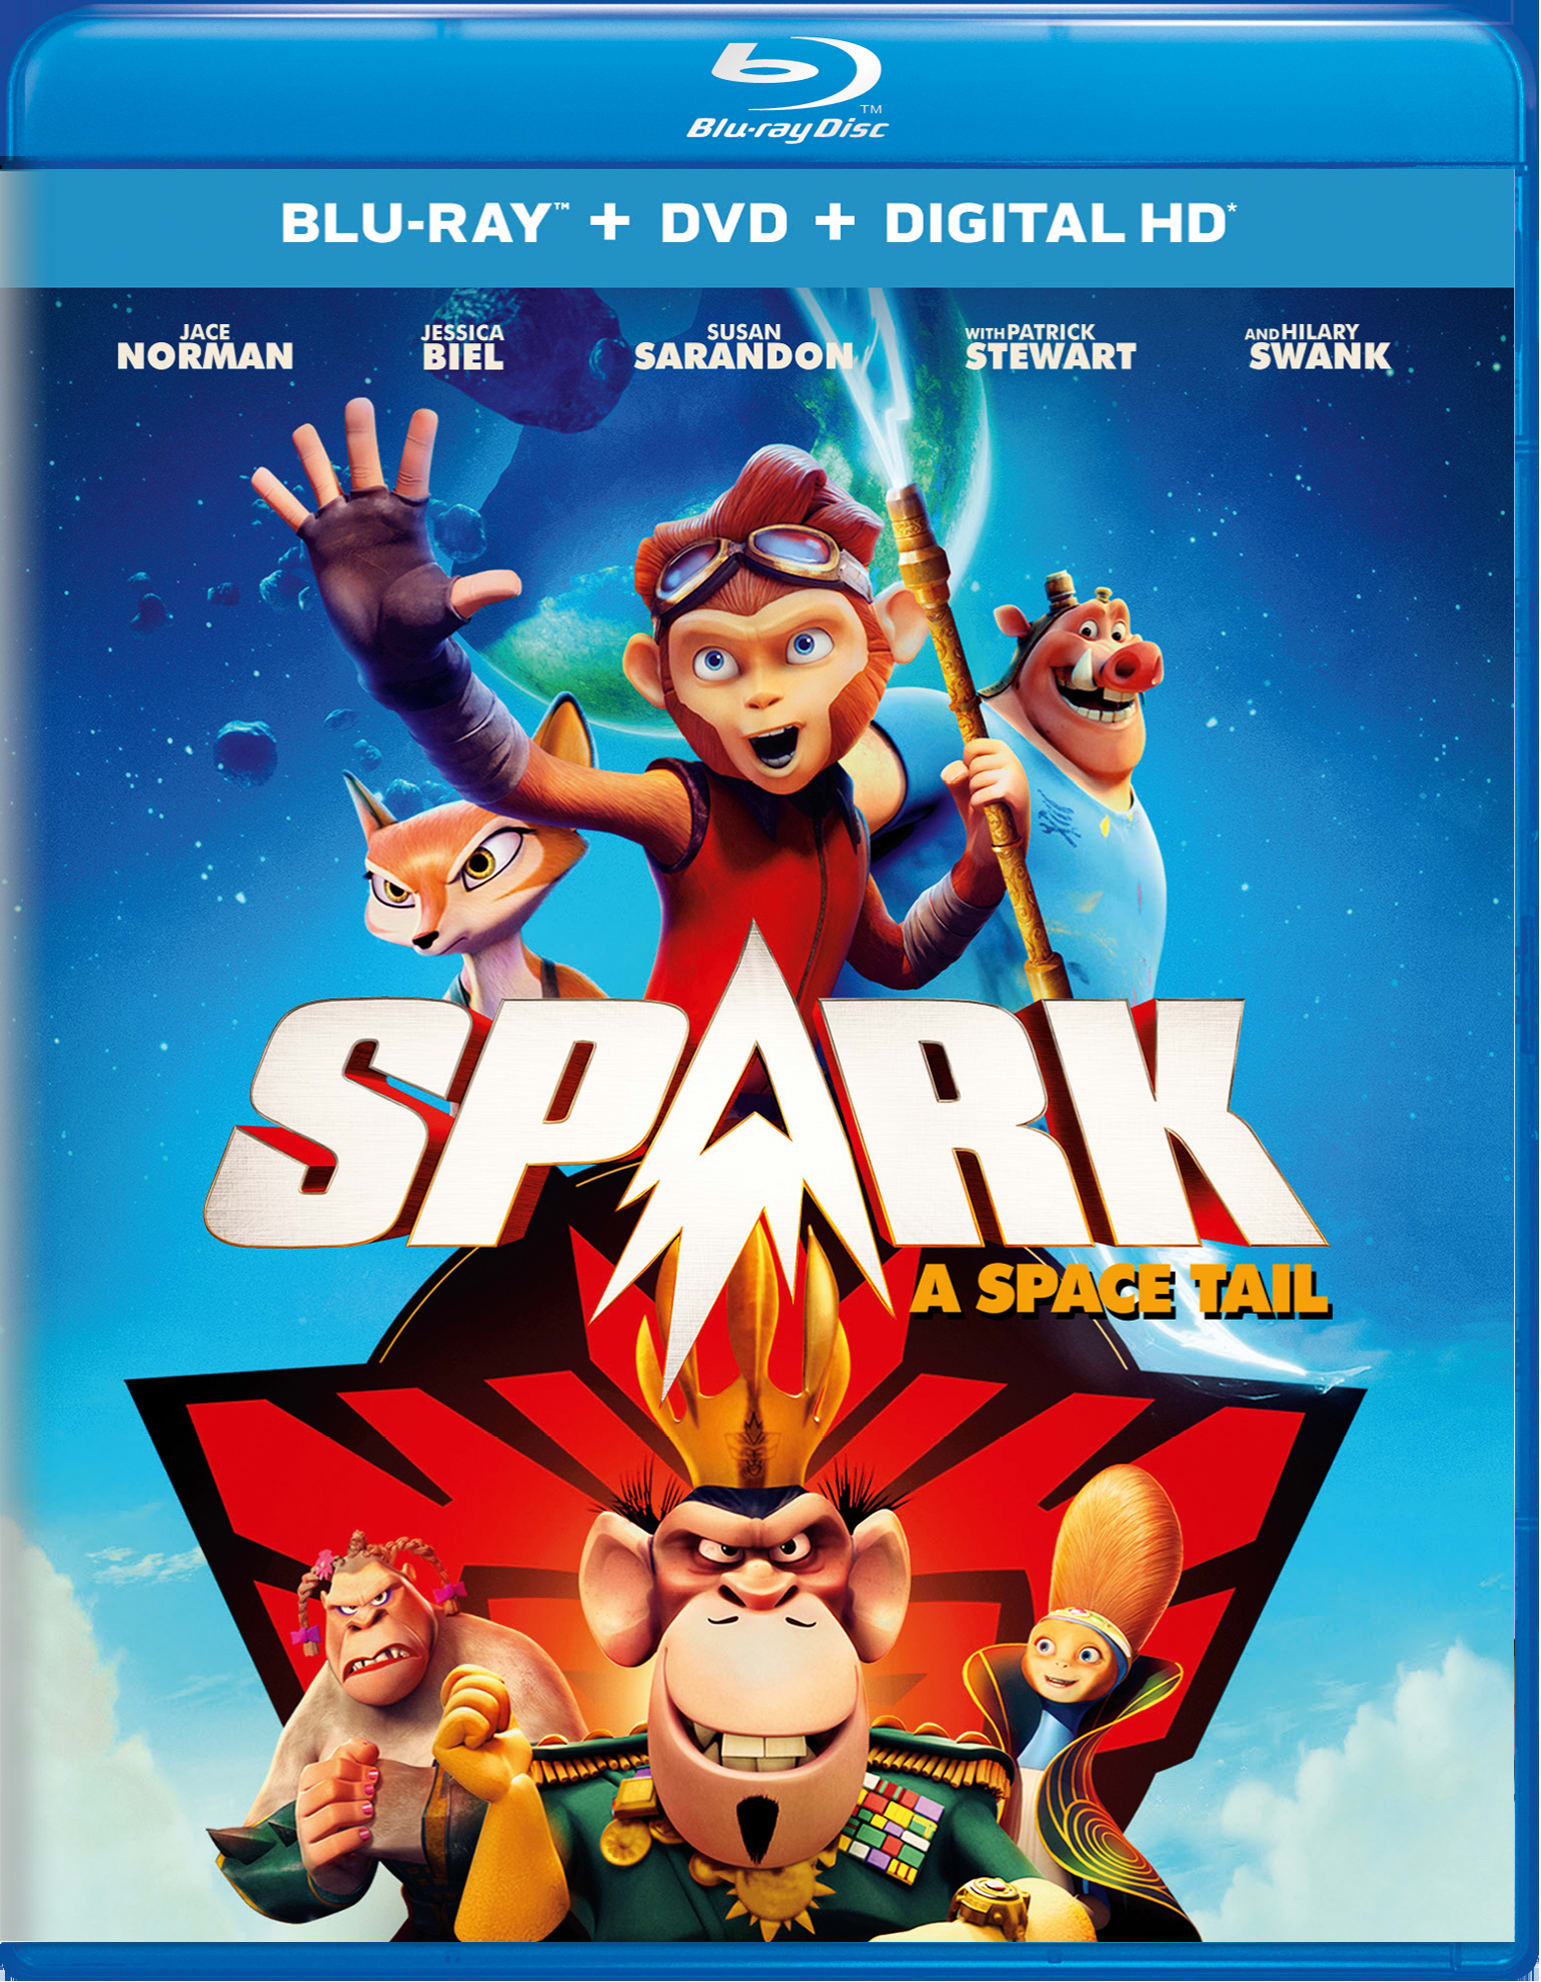 Spark: A Space Tail (DVD + Digital) [Blu-ray]